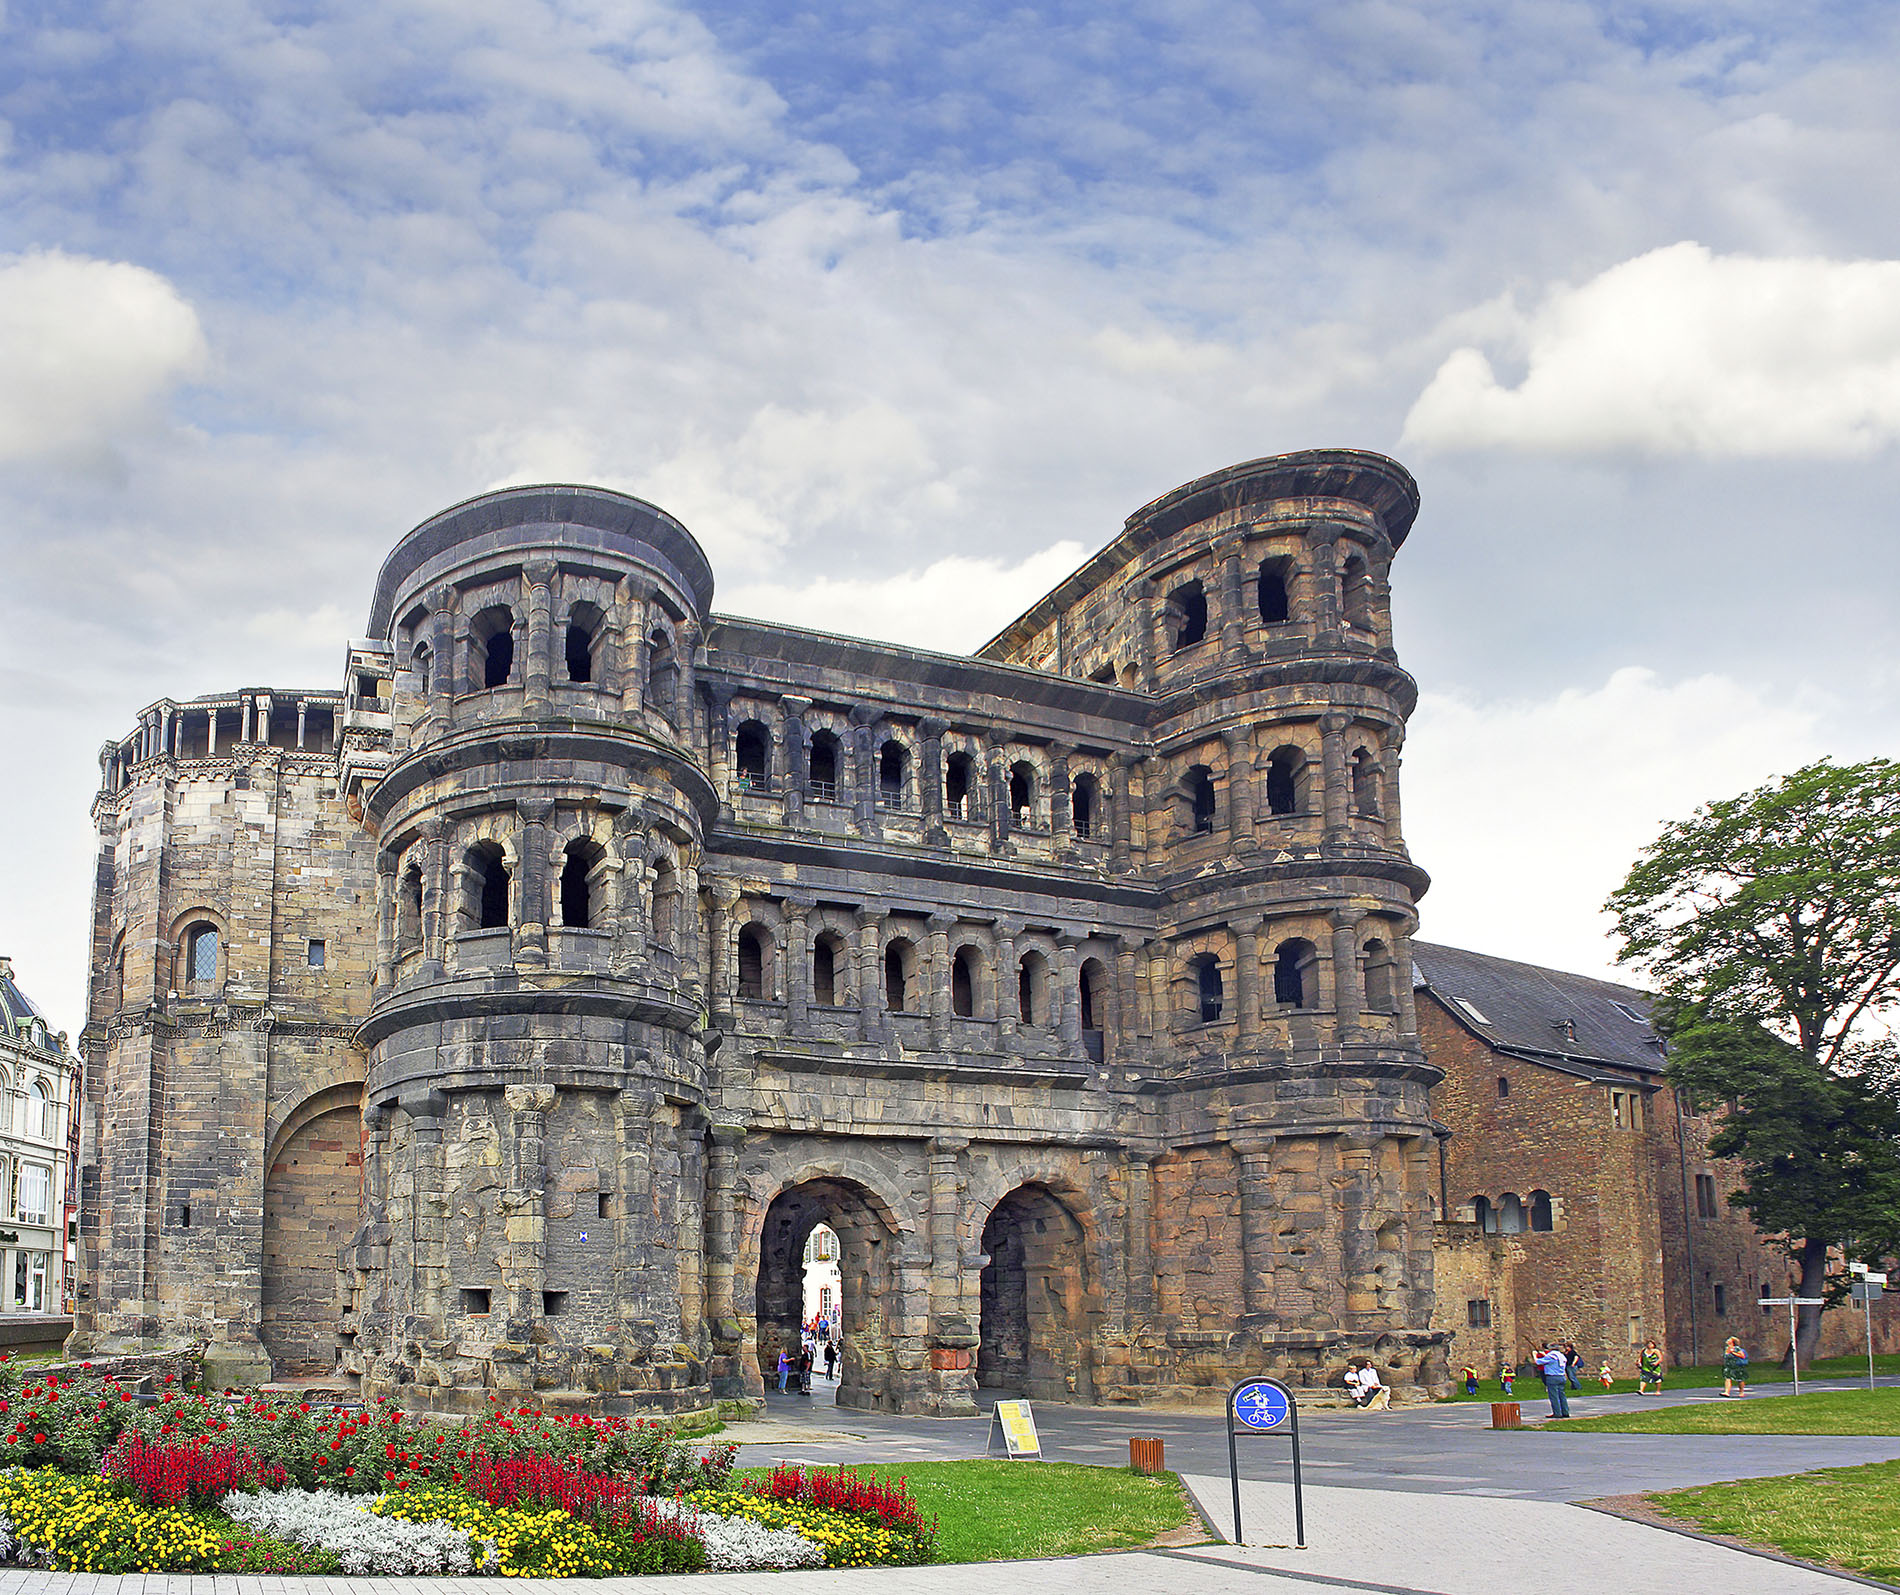 The impressive Roman gate of Porta Nigra amongs tourists and fragrant flower beds Trier, Germany